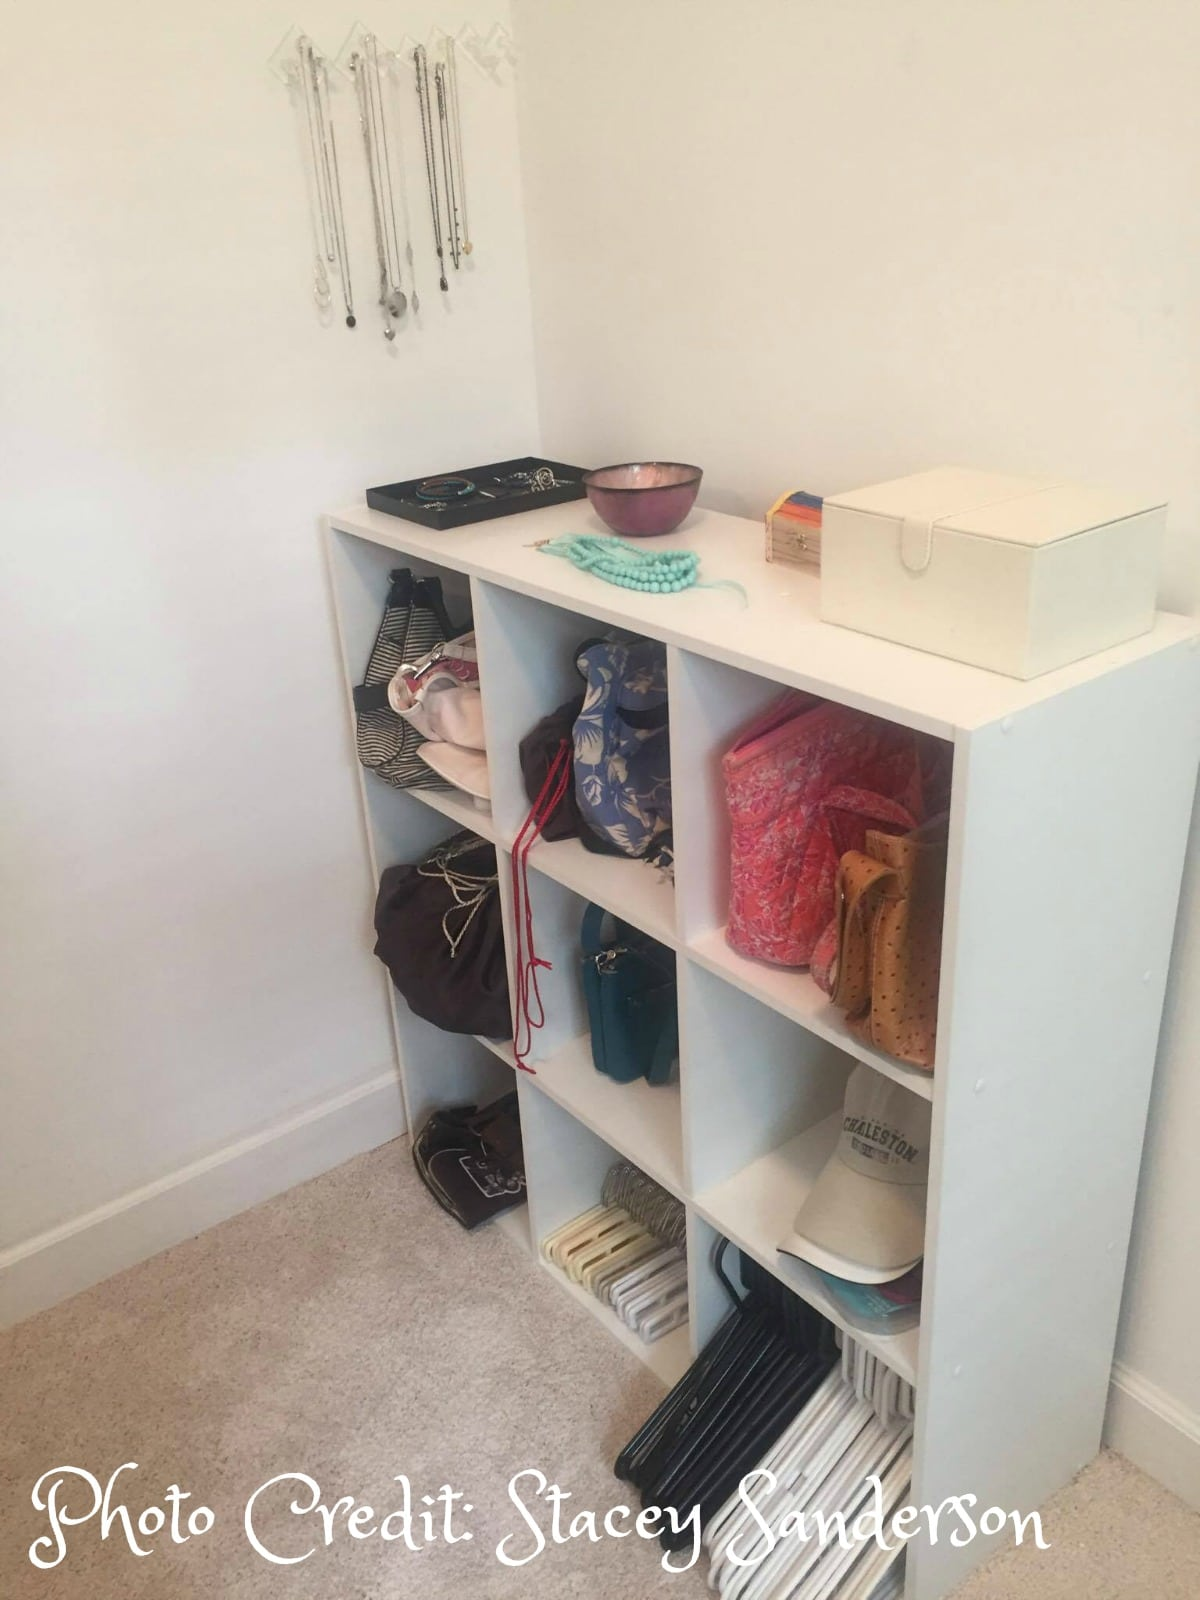 Cleaning your closet? Don't forget about purse organization?